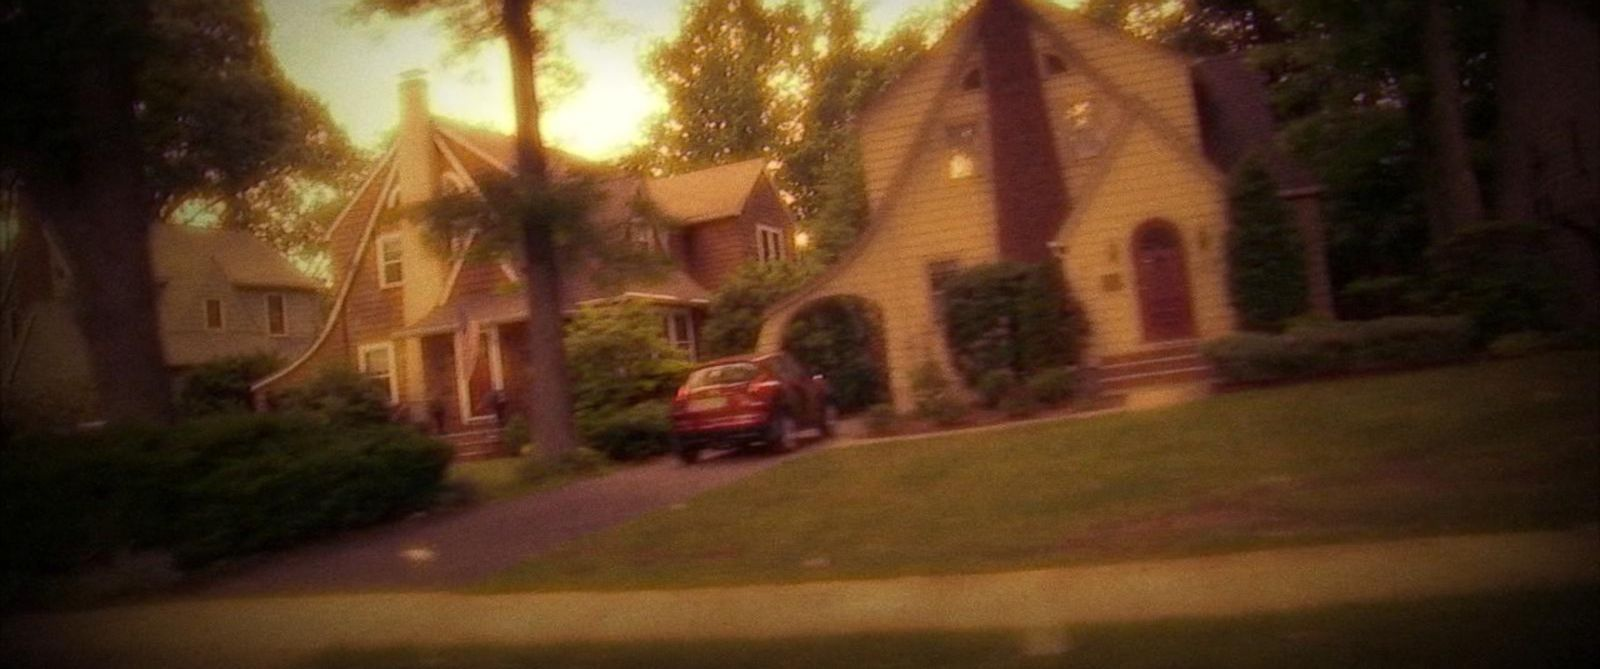 """PHOTO: A Westfield, New Jersey family claims they are being targeted by an alleged stalker nicknamed """"The Watcher."""""""